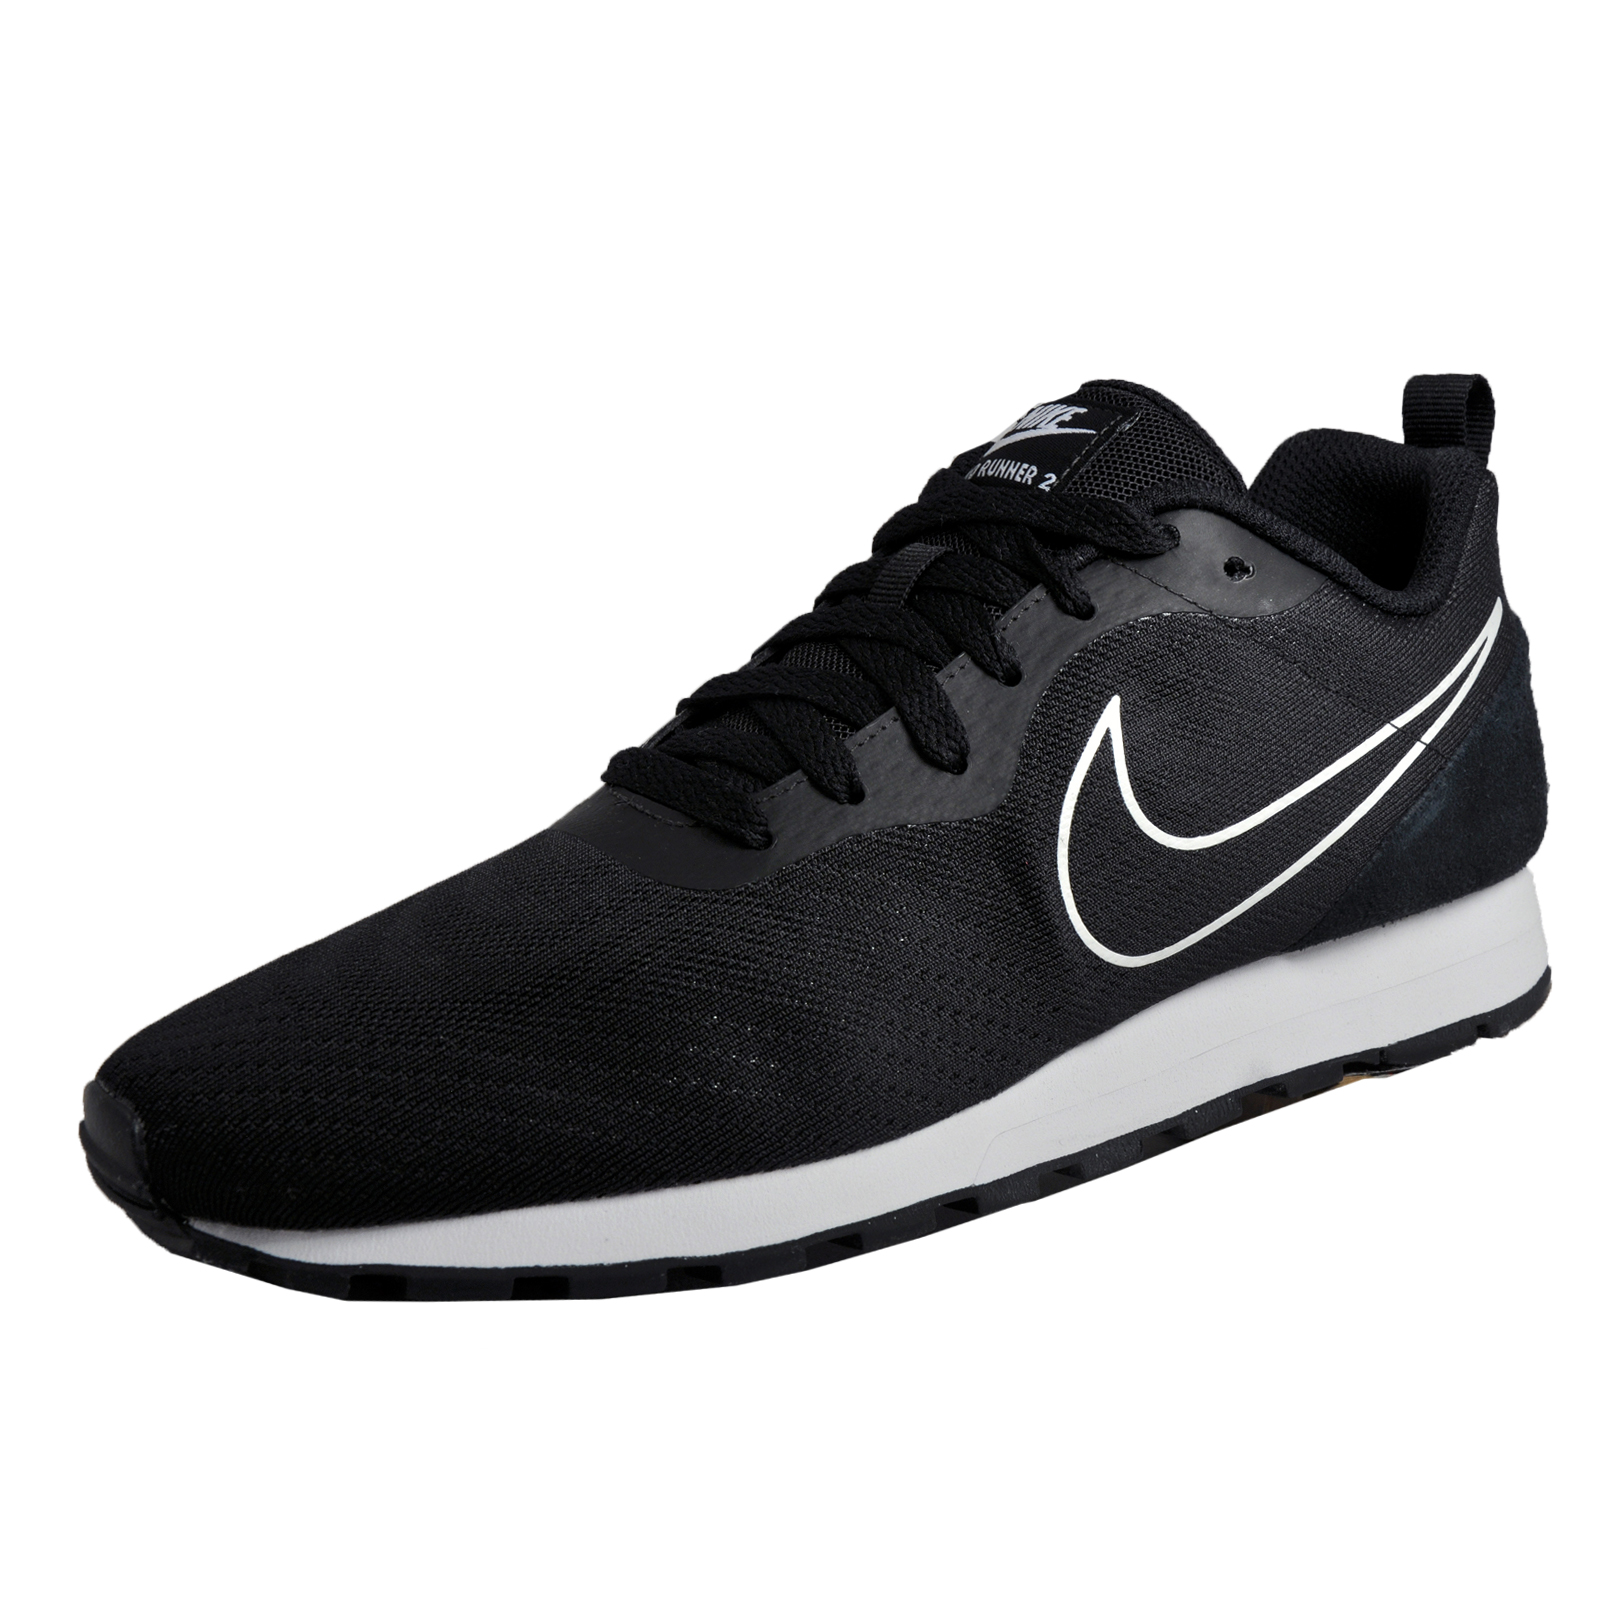 promo code a56ba fedb8 Details about Nike MD Runner 2 Eng Mesh Mens Classic Casual Retro Trainers  Black